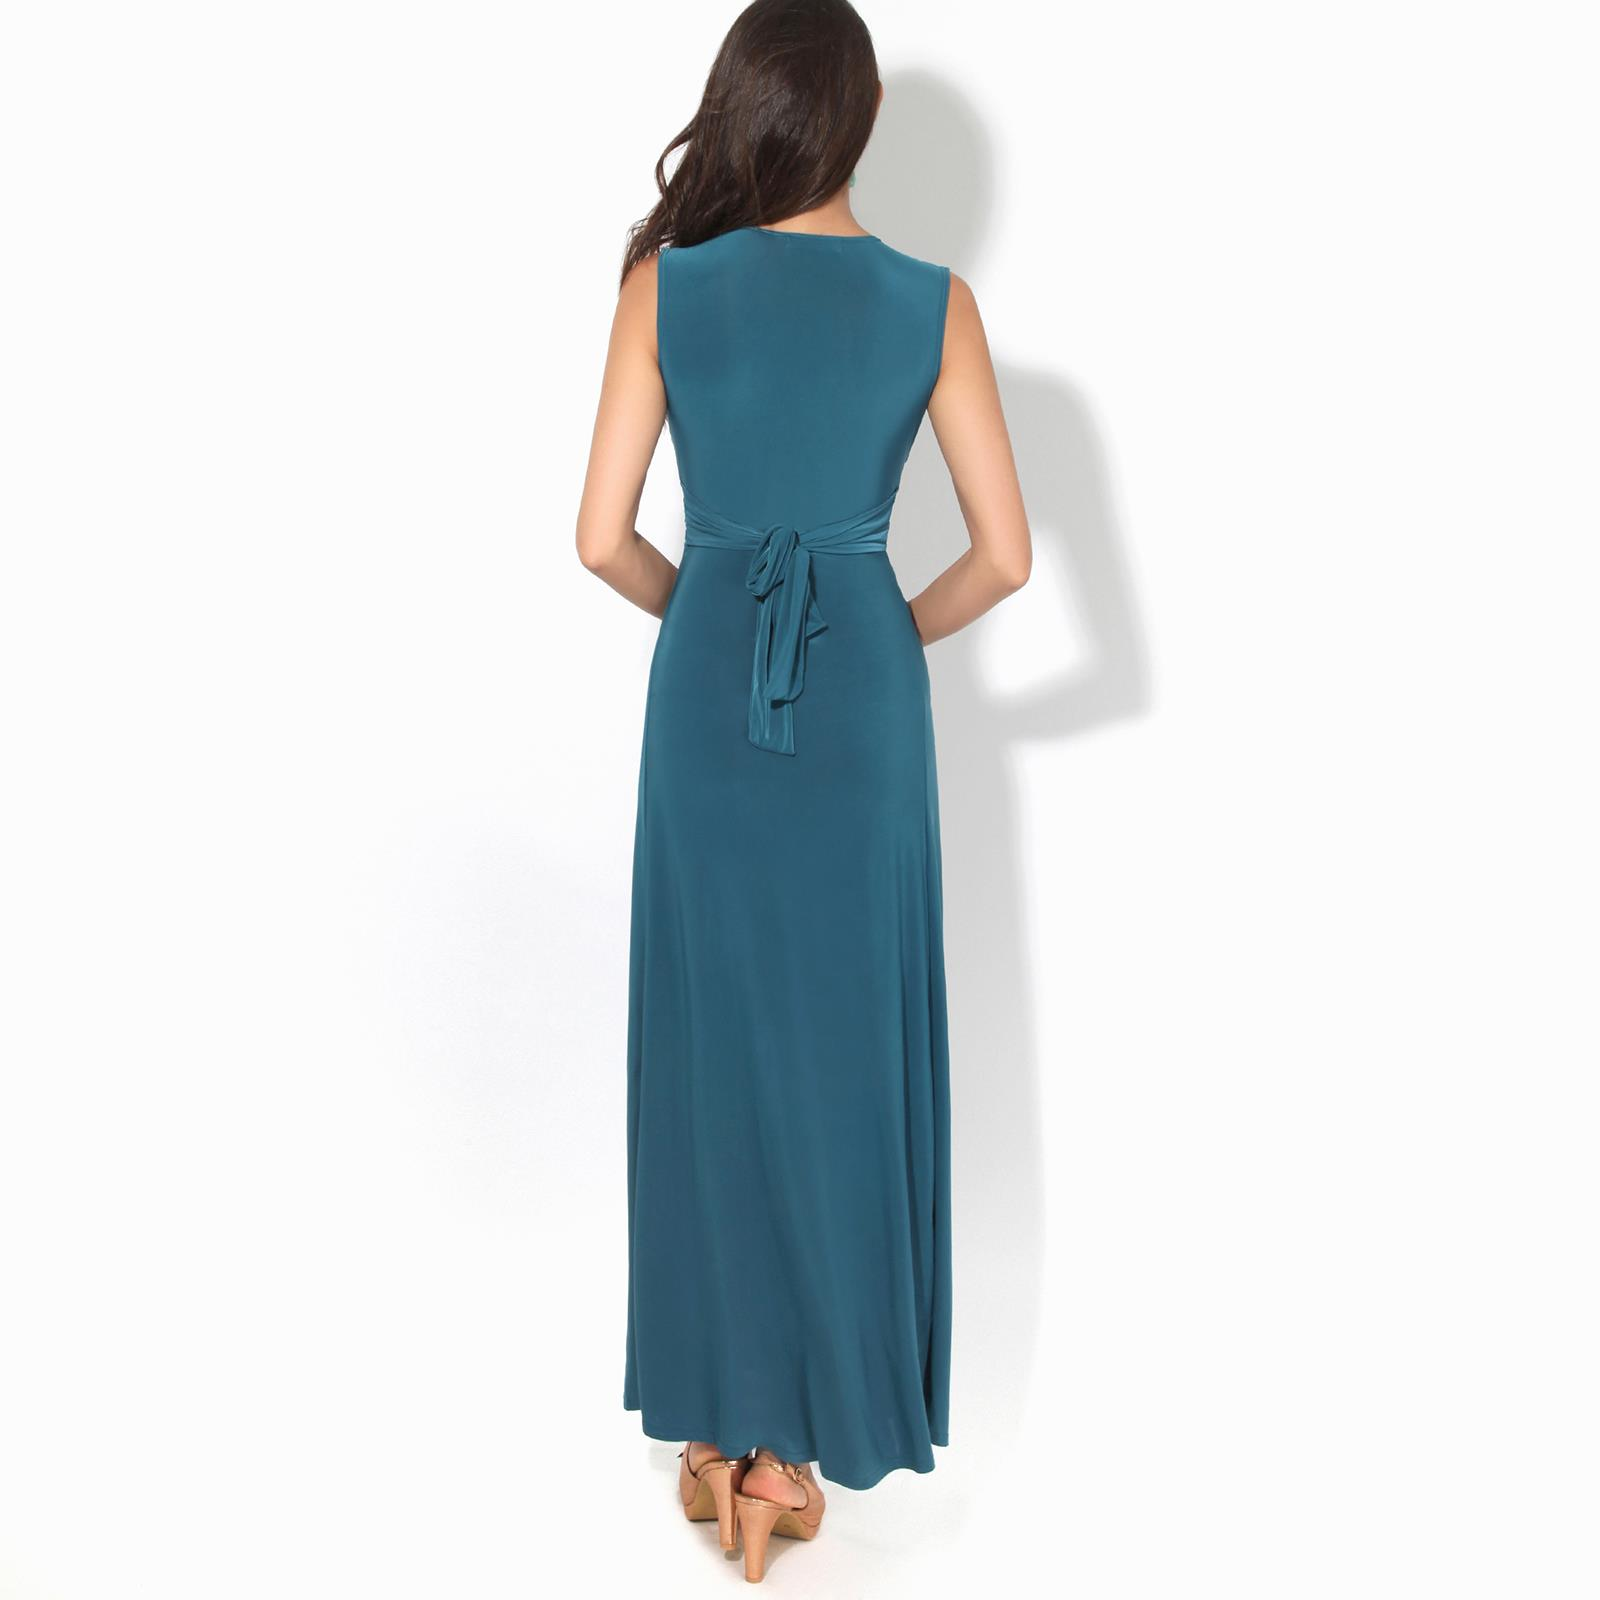 Womens-Ladies-Boho-Long-Maxi-Dress-Knot-V-Neck-Sleeveless-Pleated-Summer-Party thumbnail 13